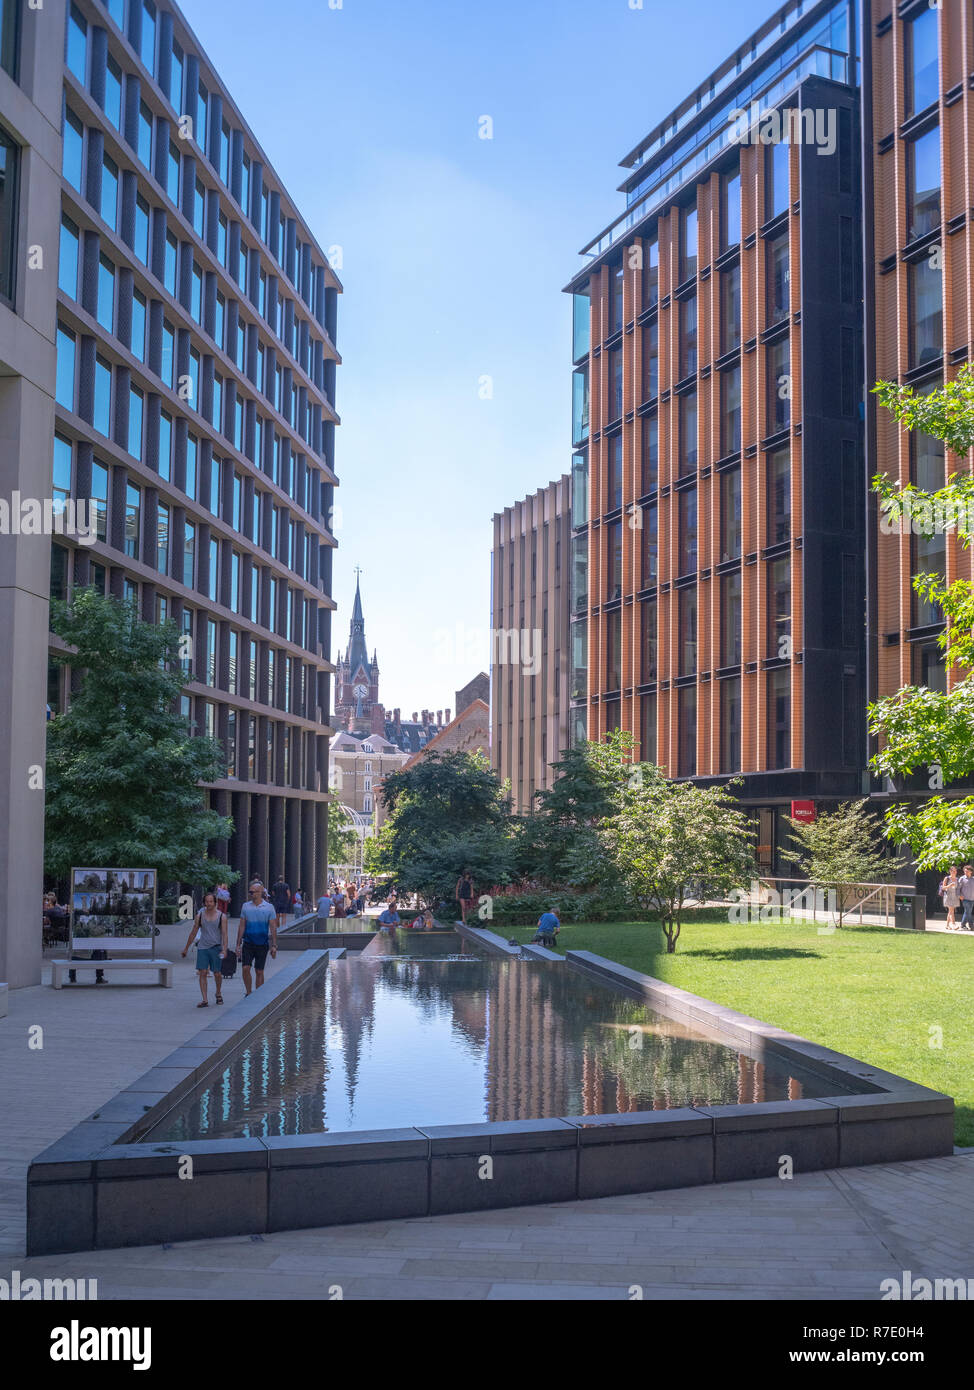 Pancras Square, Kings Cross, London part of the regeneration of the old goods yards of Kings Cross and home to Google, YouTube and other businesses Stock Photo